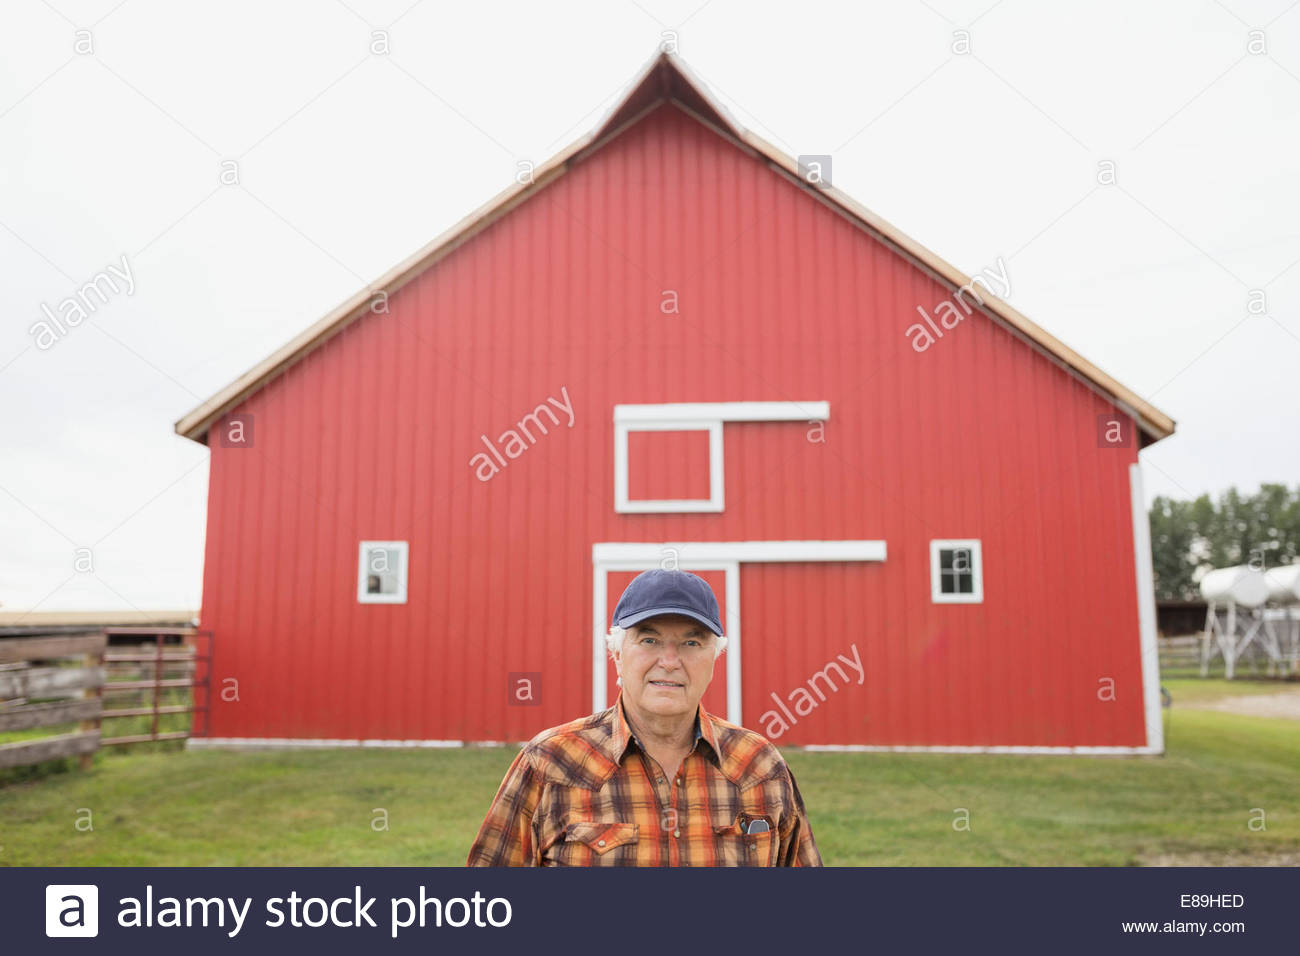 Farmer standing in front of red barn - Stock Image